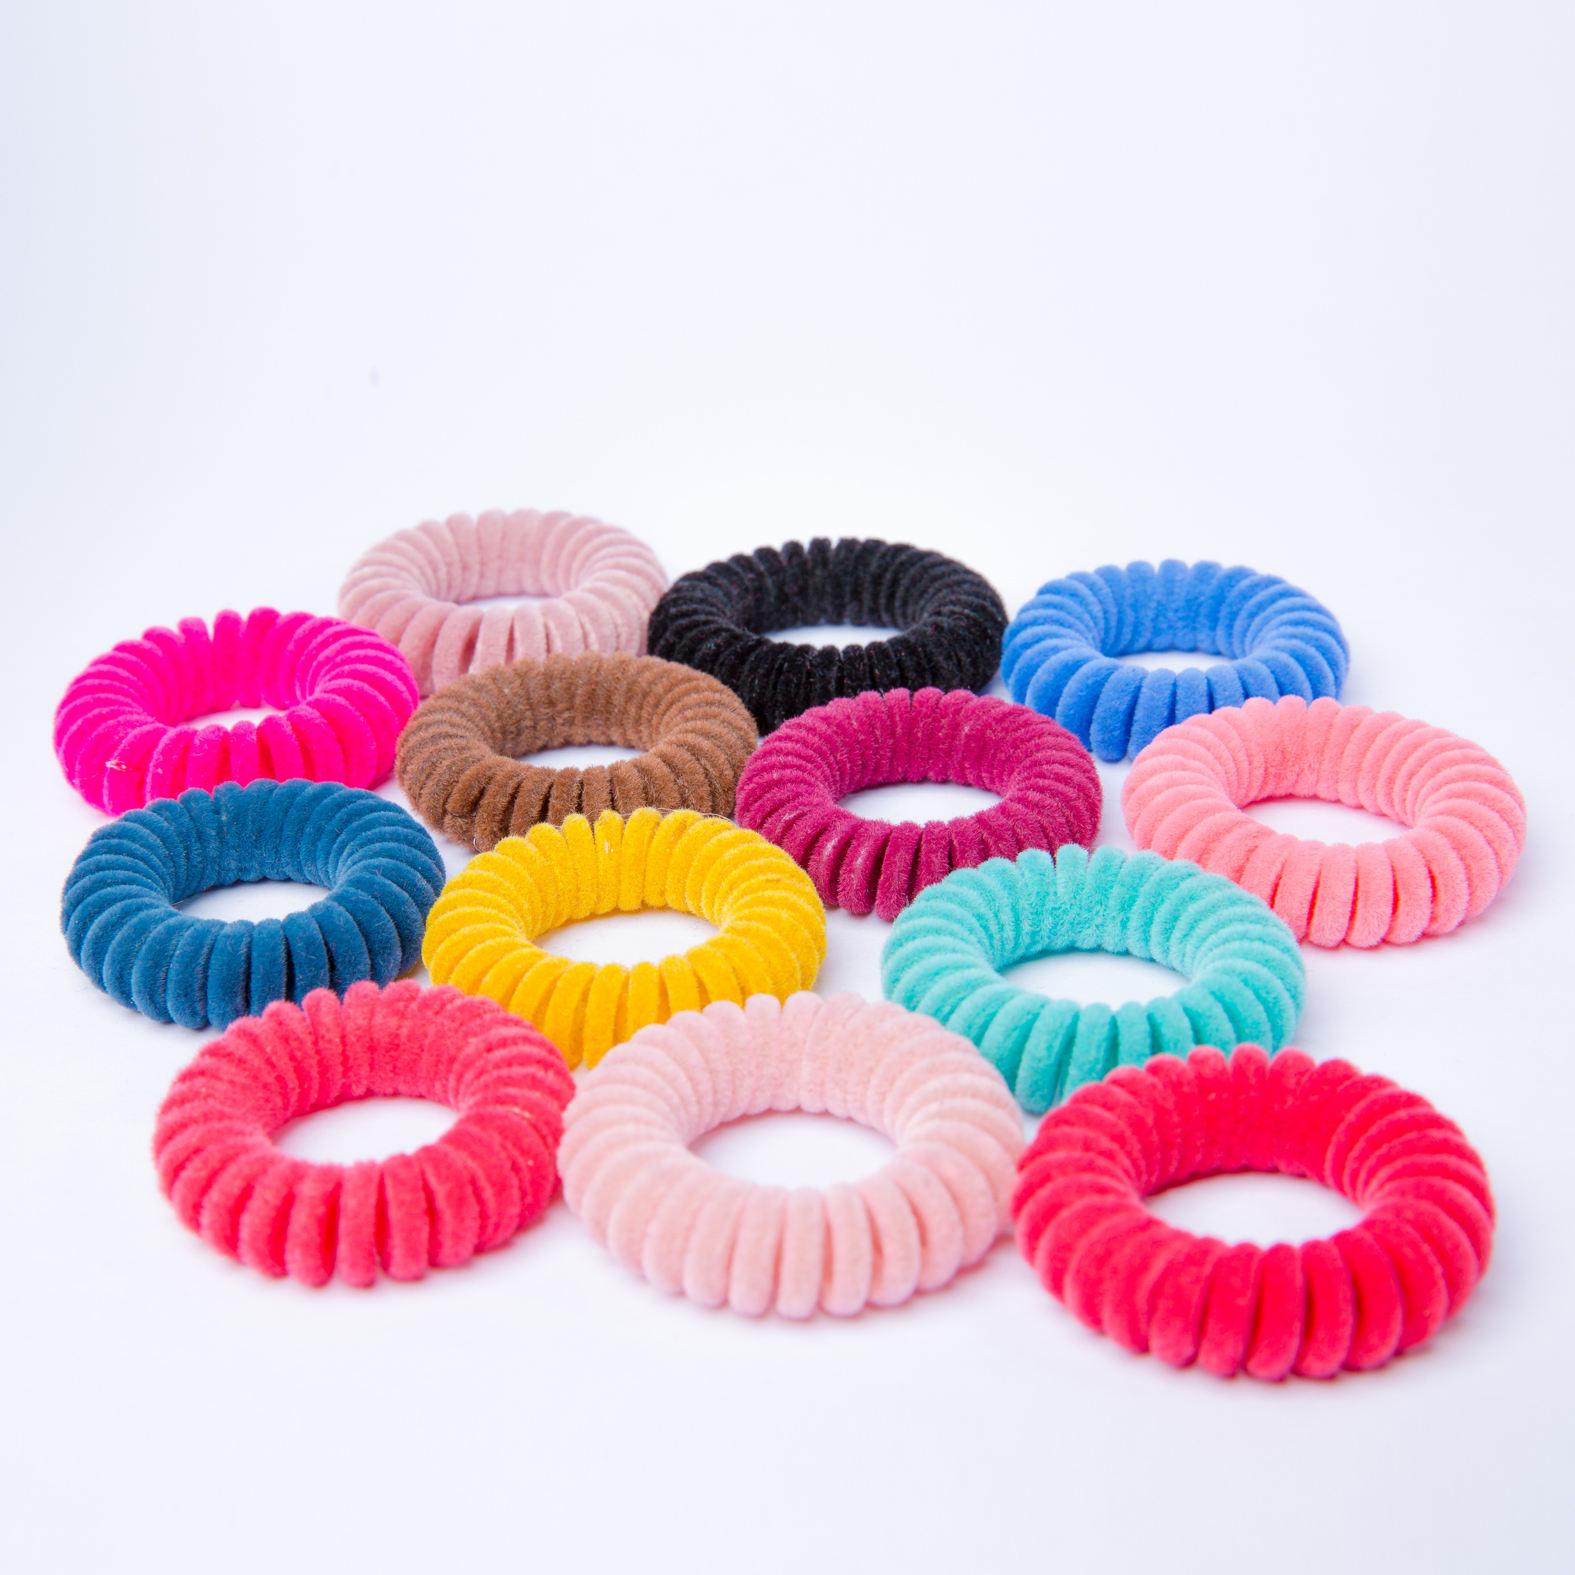 Festival gift 5.5cm BONEYA soft TPU Telephone Wire Coil Gum Elastic Hair Band Girls Hair Tie Rubber Ponytail Holder Bracelet